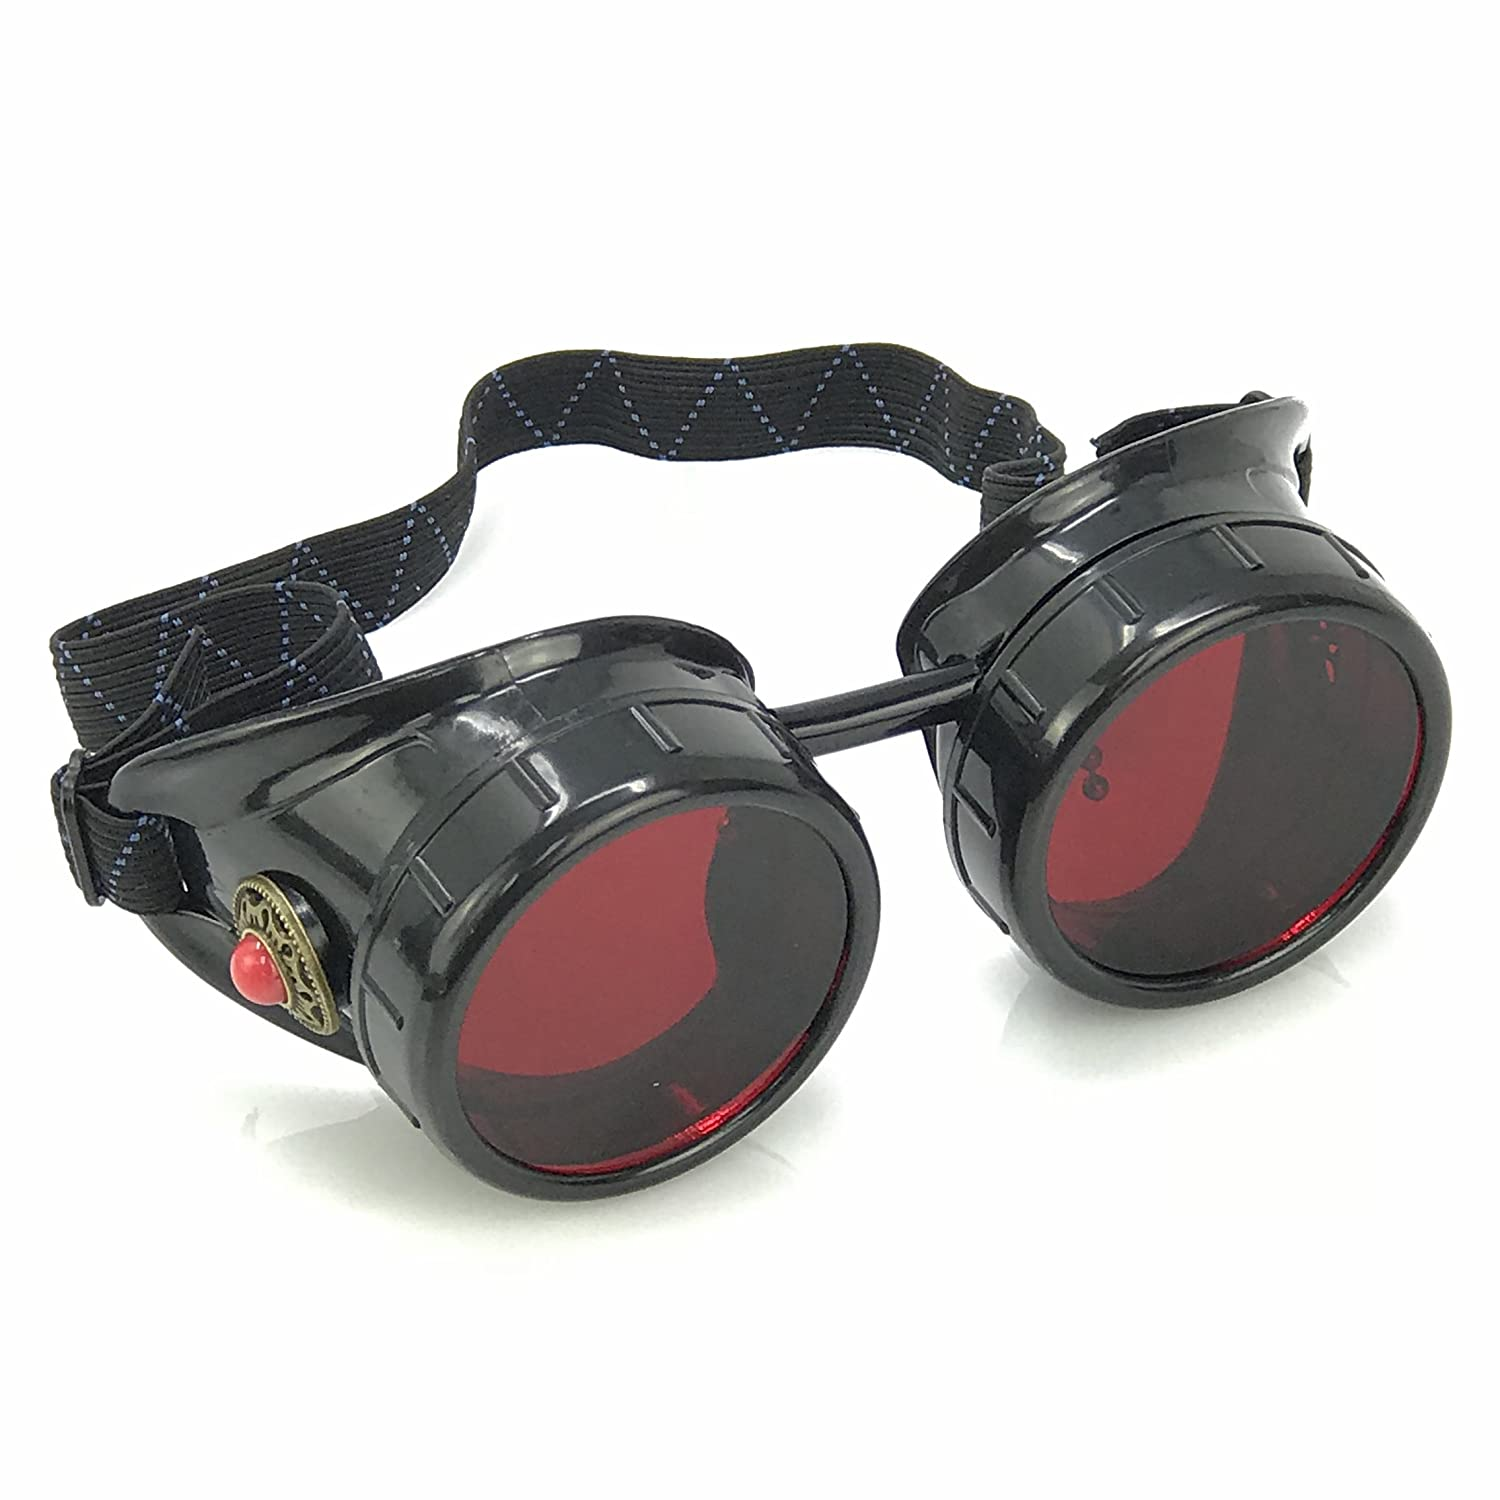 Steampunk Victorian Goggles welding Glasses diesel punk-limited GGG-red umbrellalaboratory ggg red red0